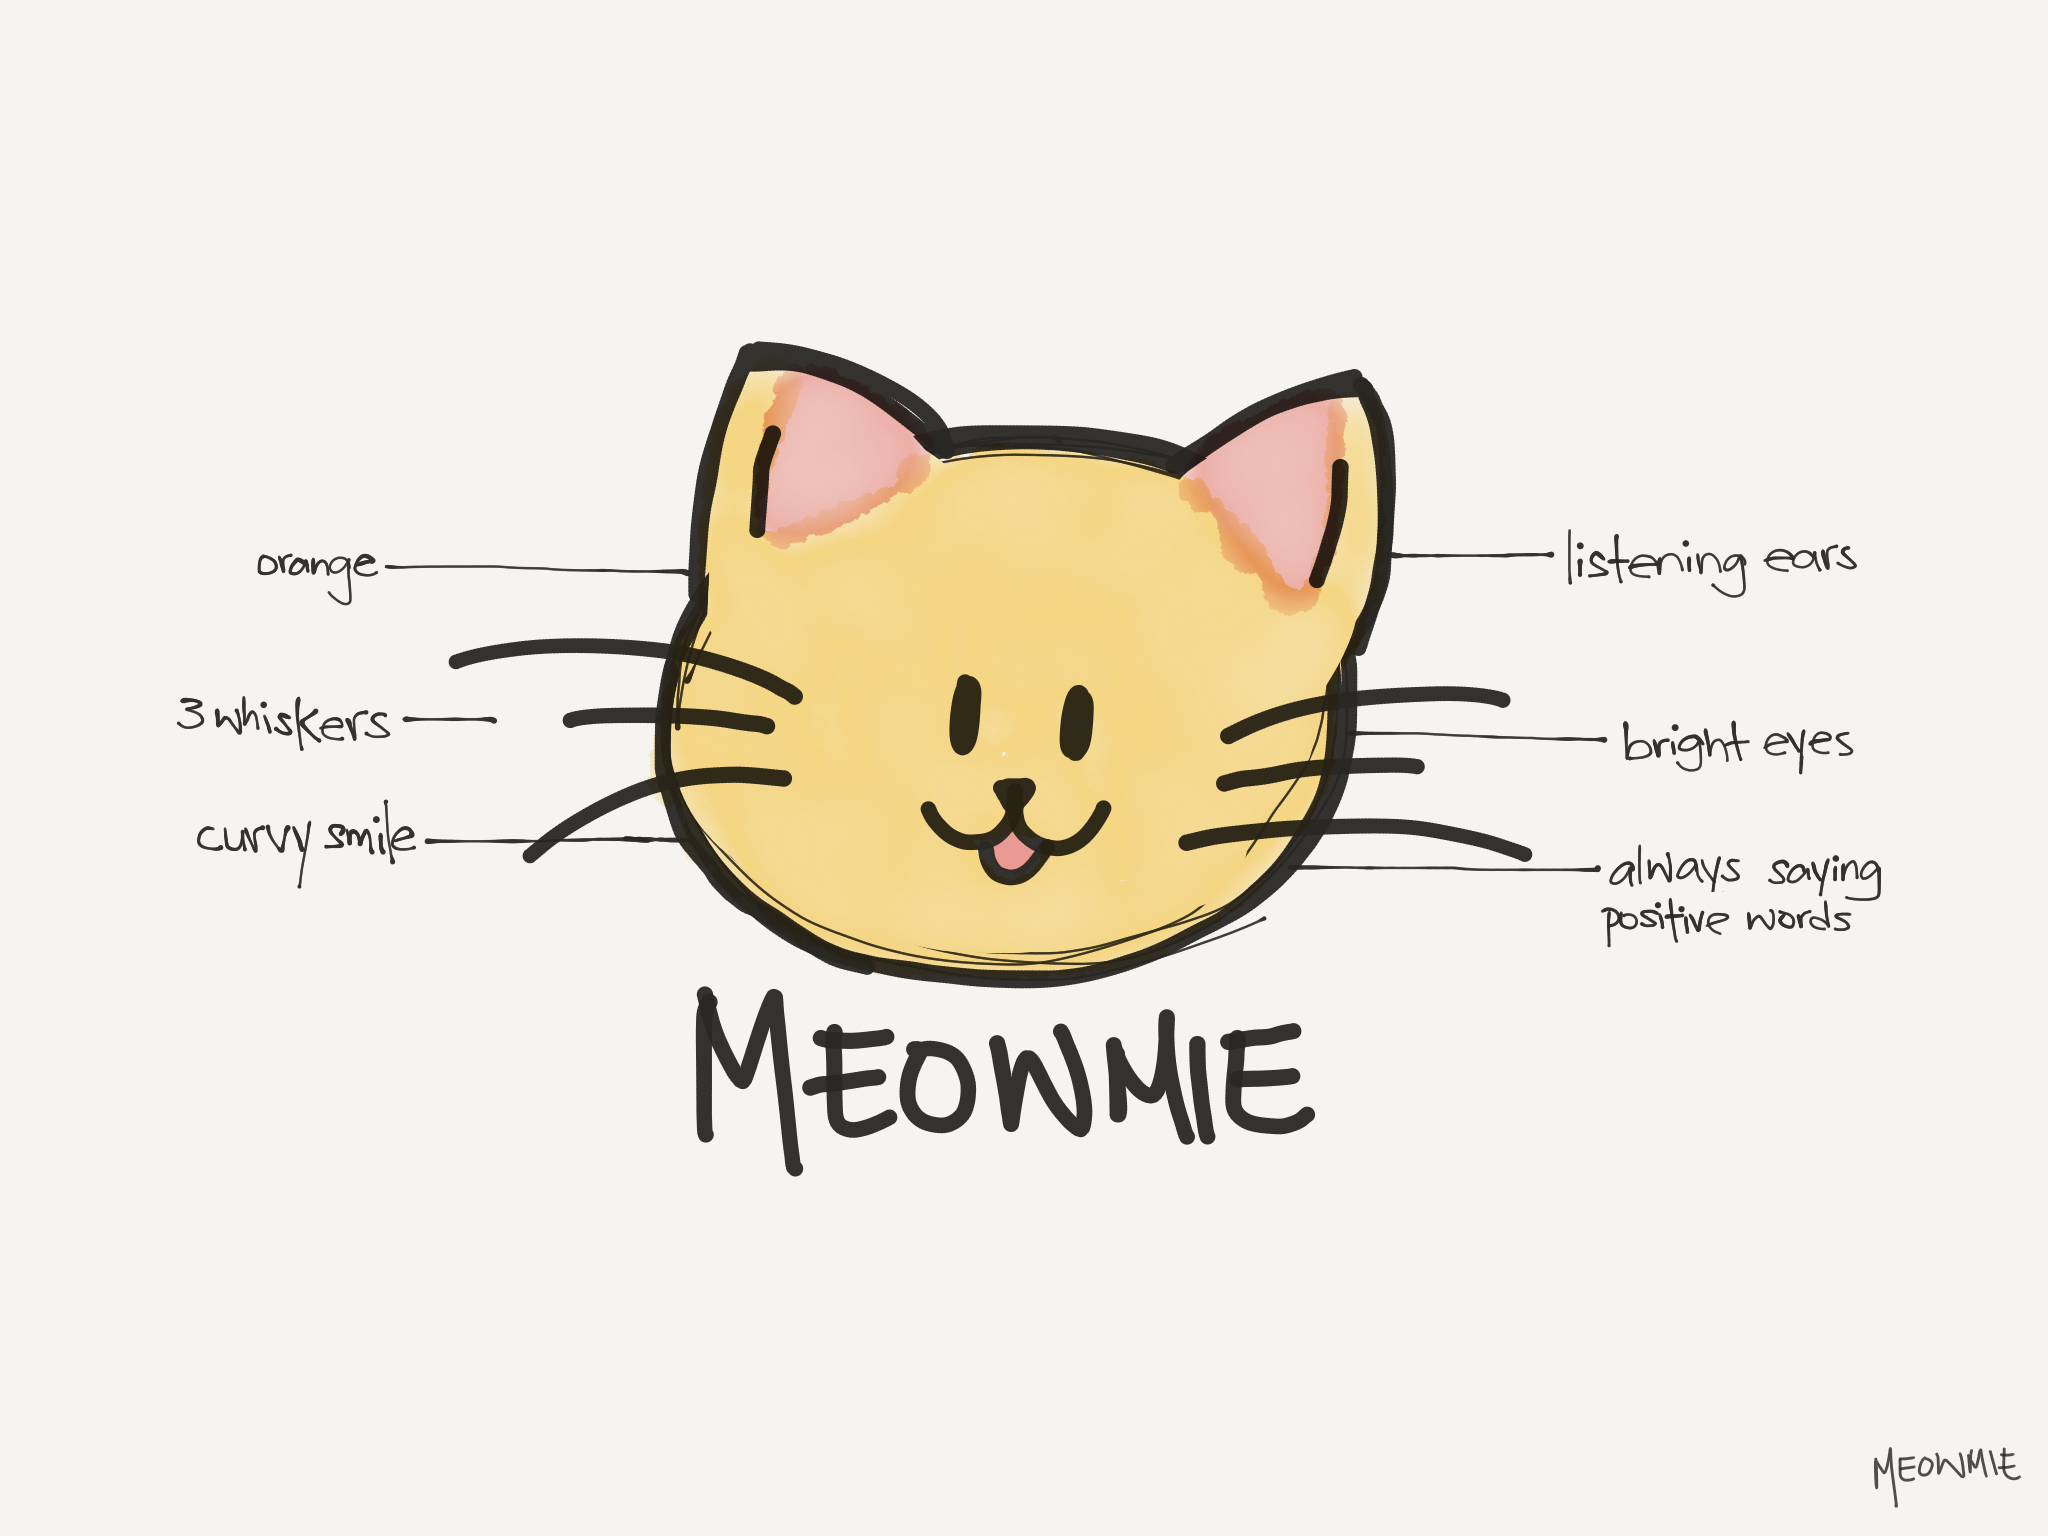 The Anatomy of Meowmie